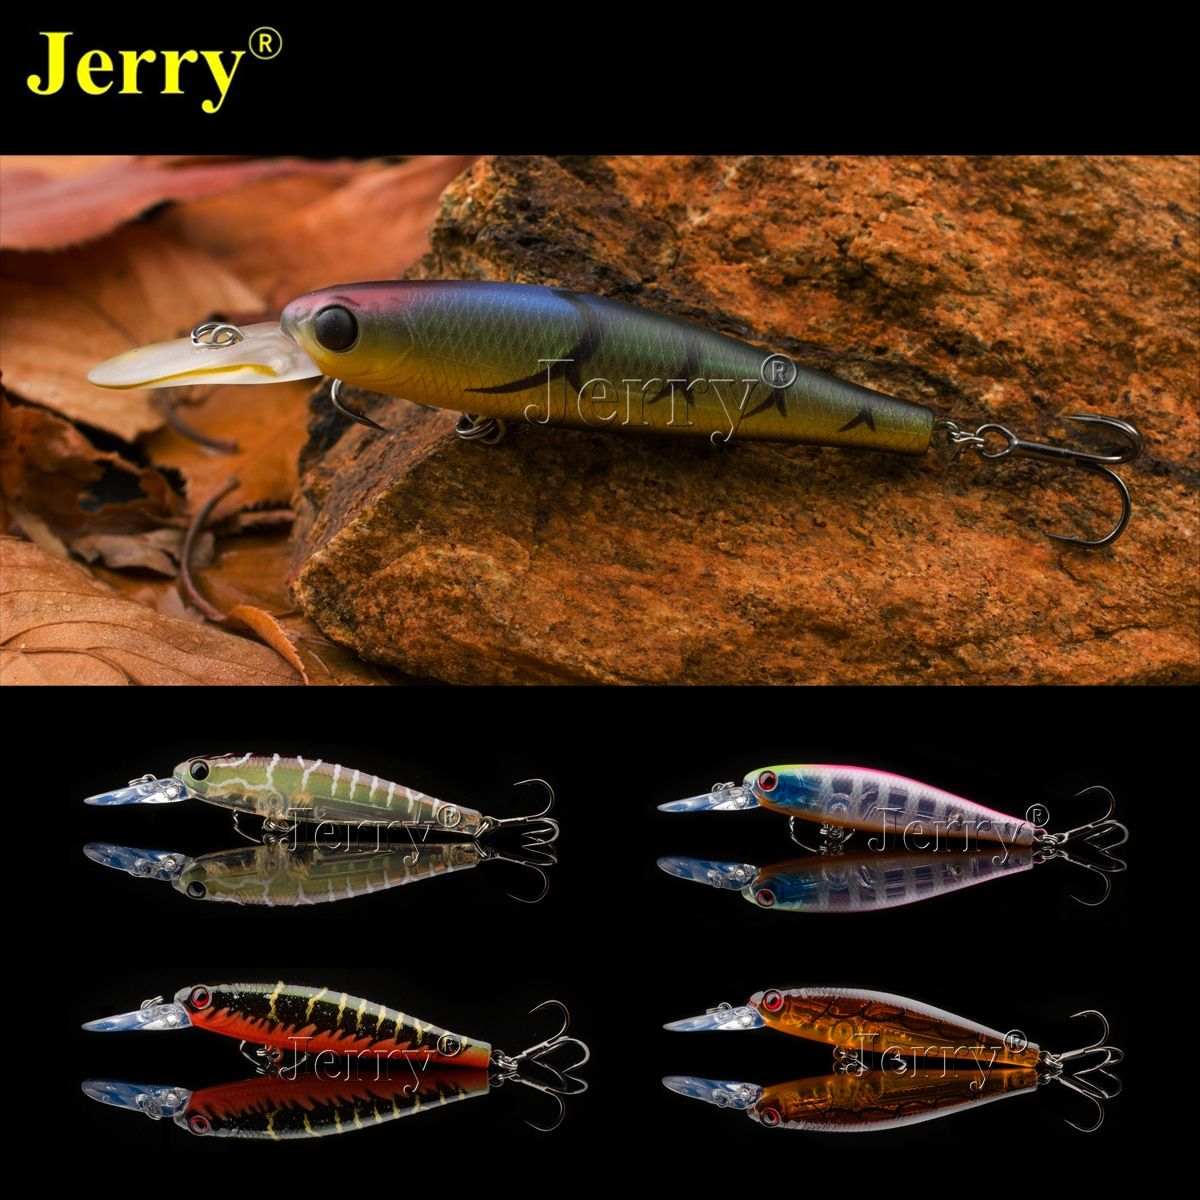 Jerry Japan minnow jerkbait 6.5cm/2.6in 6g high quality BKK hook slow sinking high quality fishing hard lure bait plugs